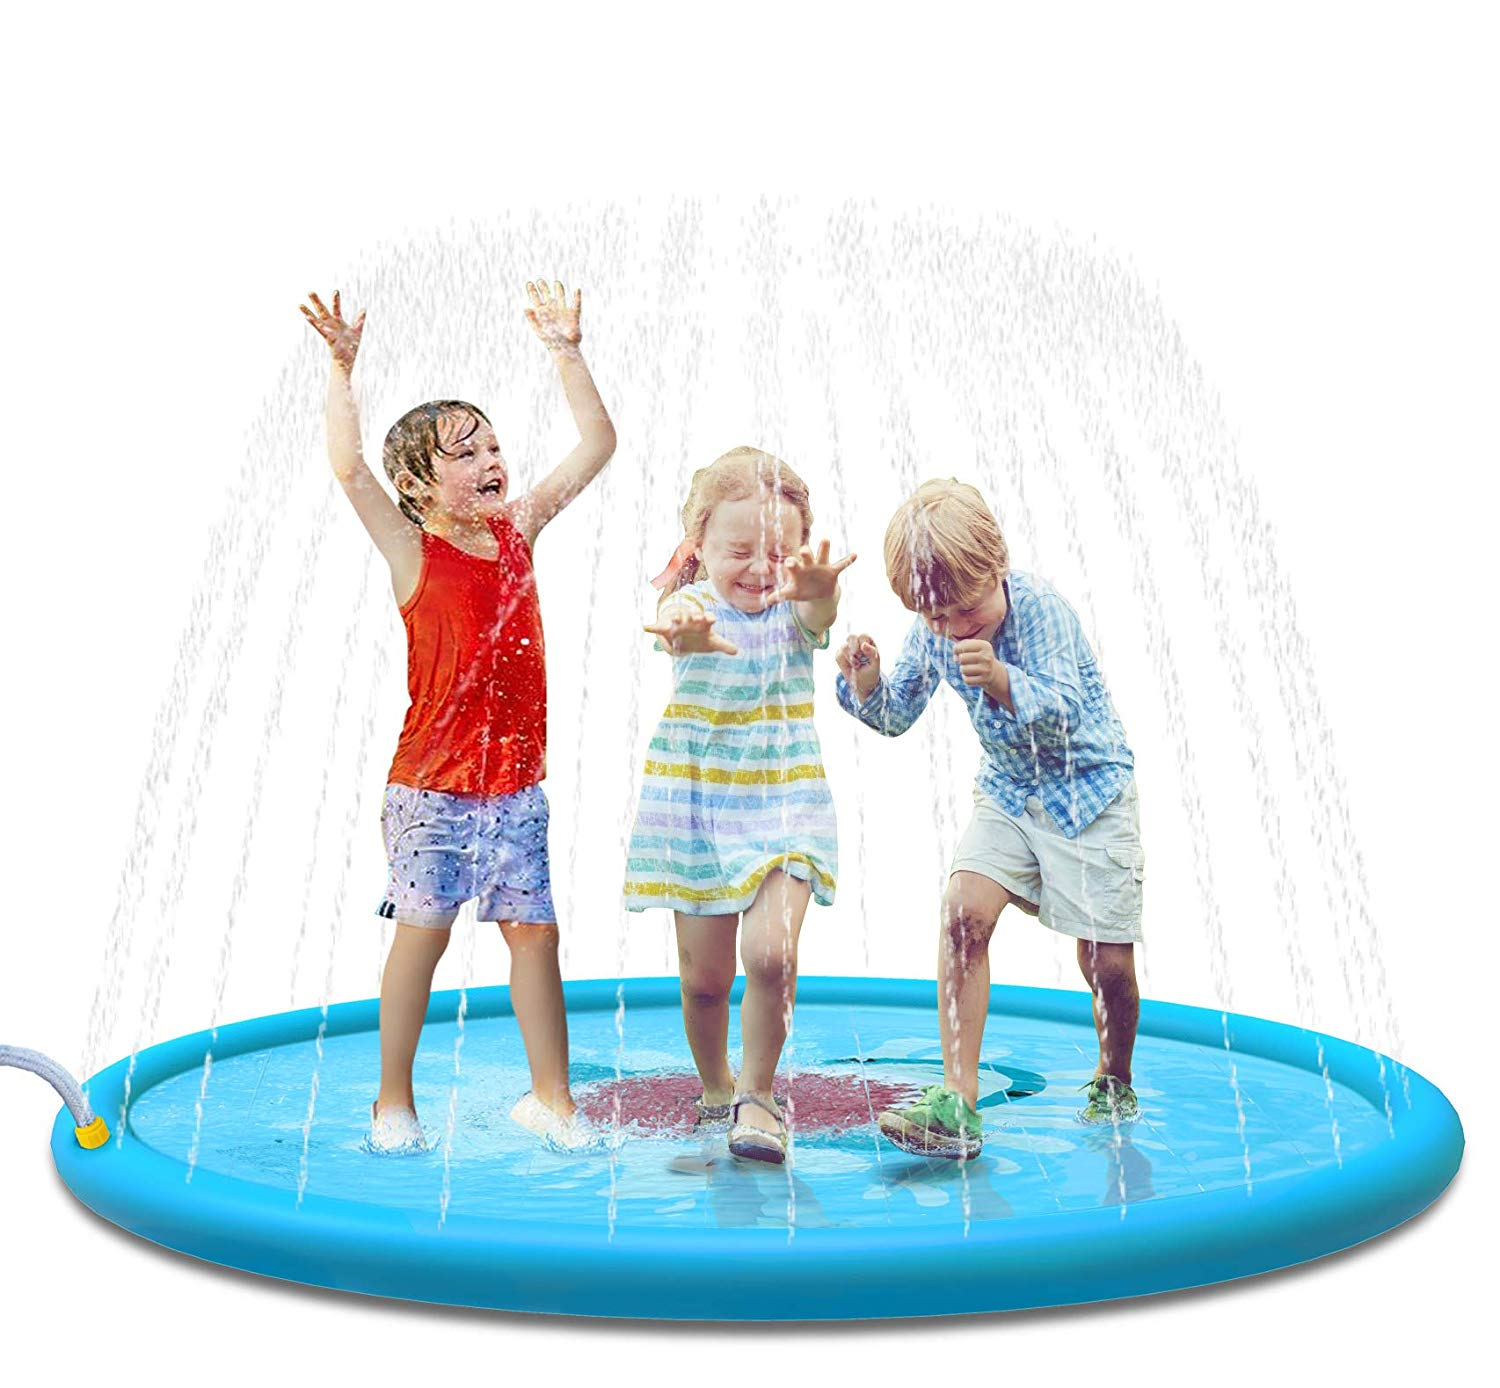 Sprinkle Splash Play Mat Sprinkler For Kids Outdoor Water Toys Fun For Boy Girls Children Outdoor Party Sprinkler Toy Splash Pad